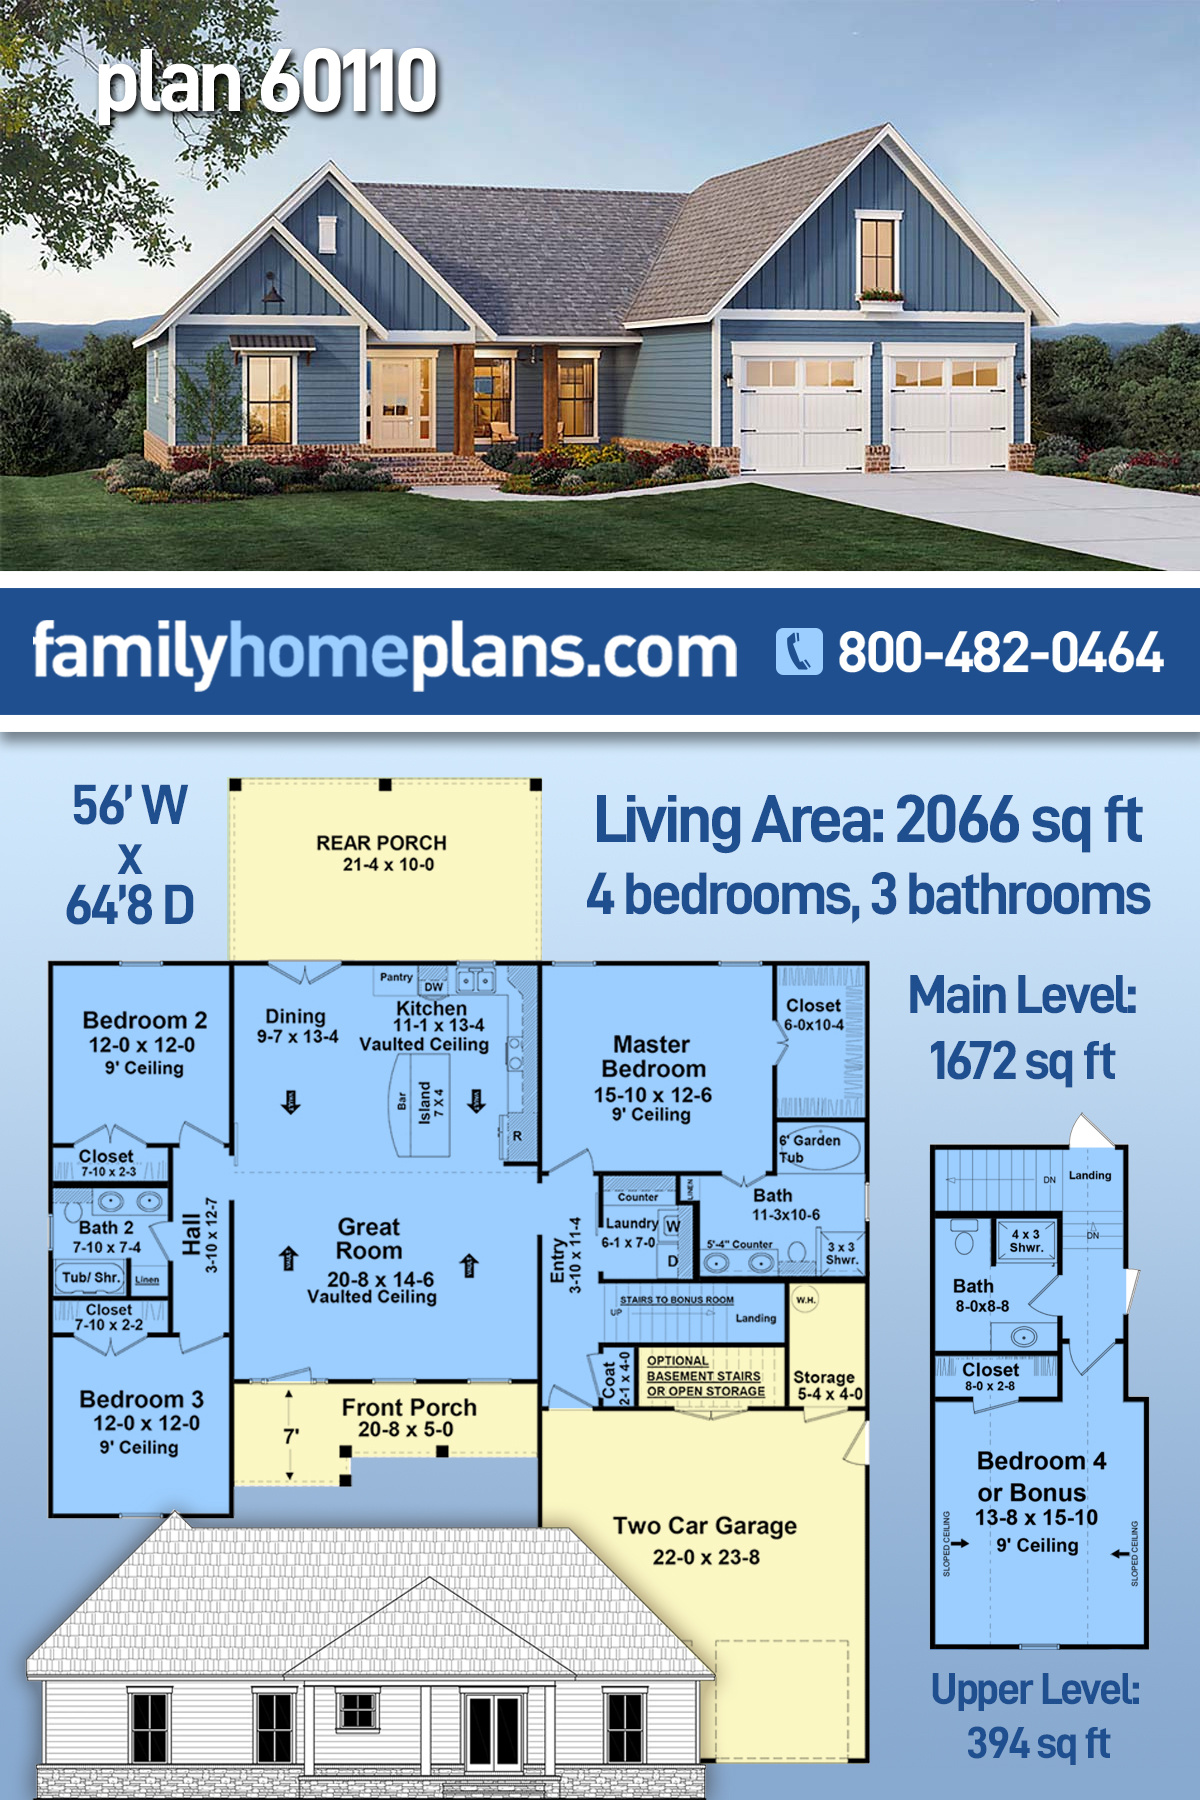 Country, Farmhouse, Ranch, Traditional House Plan 60110 with 4 Beds, 3 Baths, 2 Car Garage